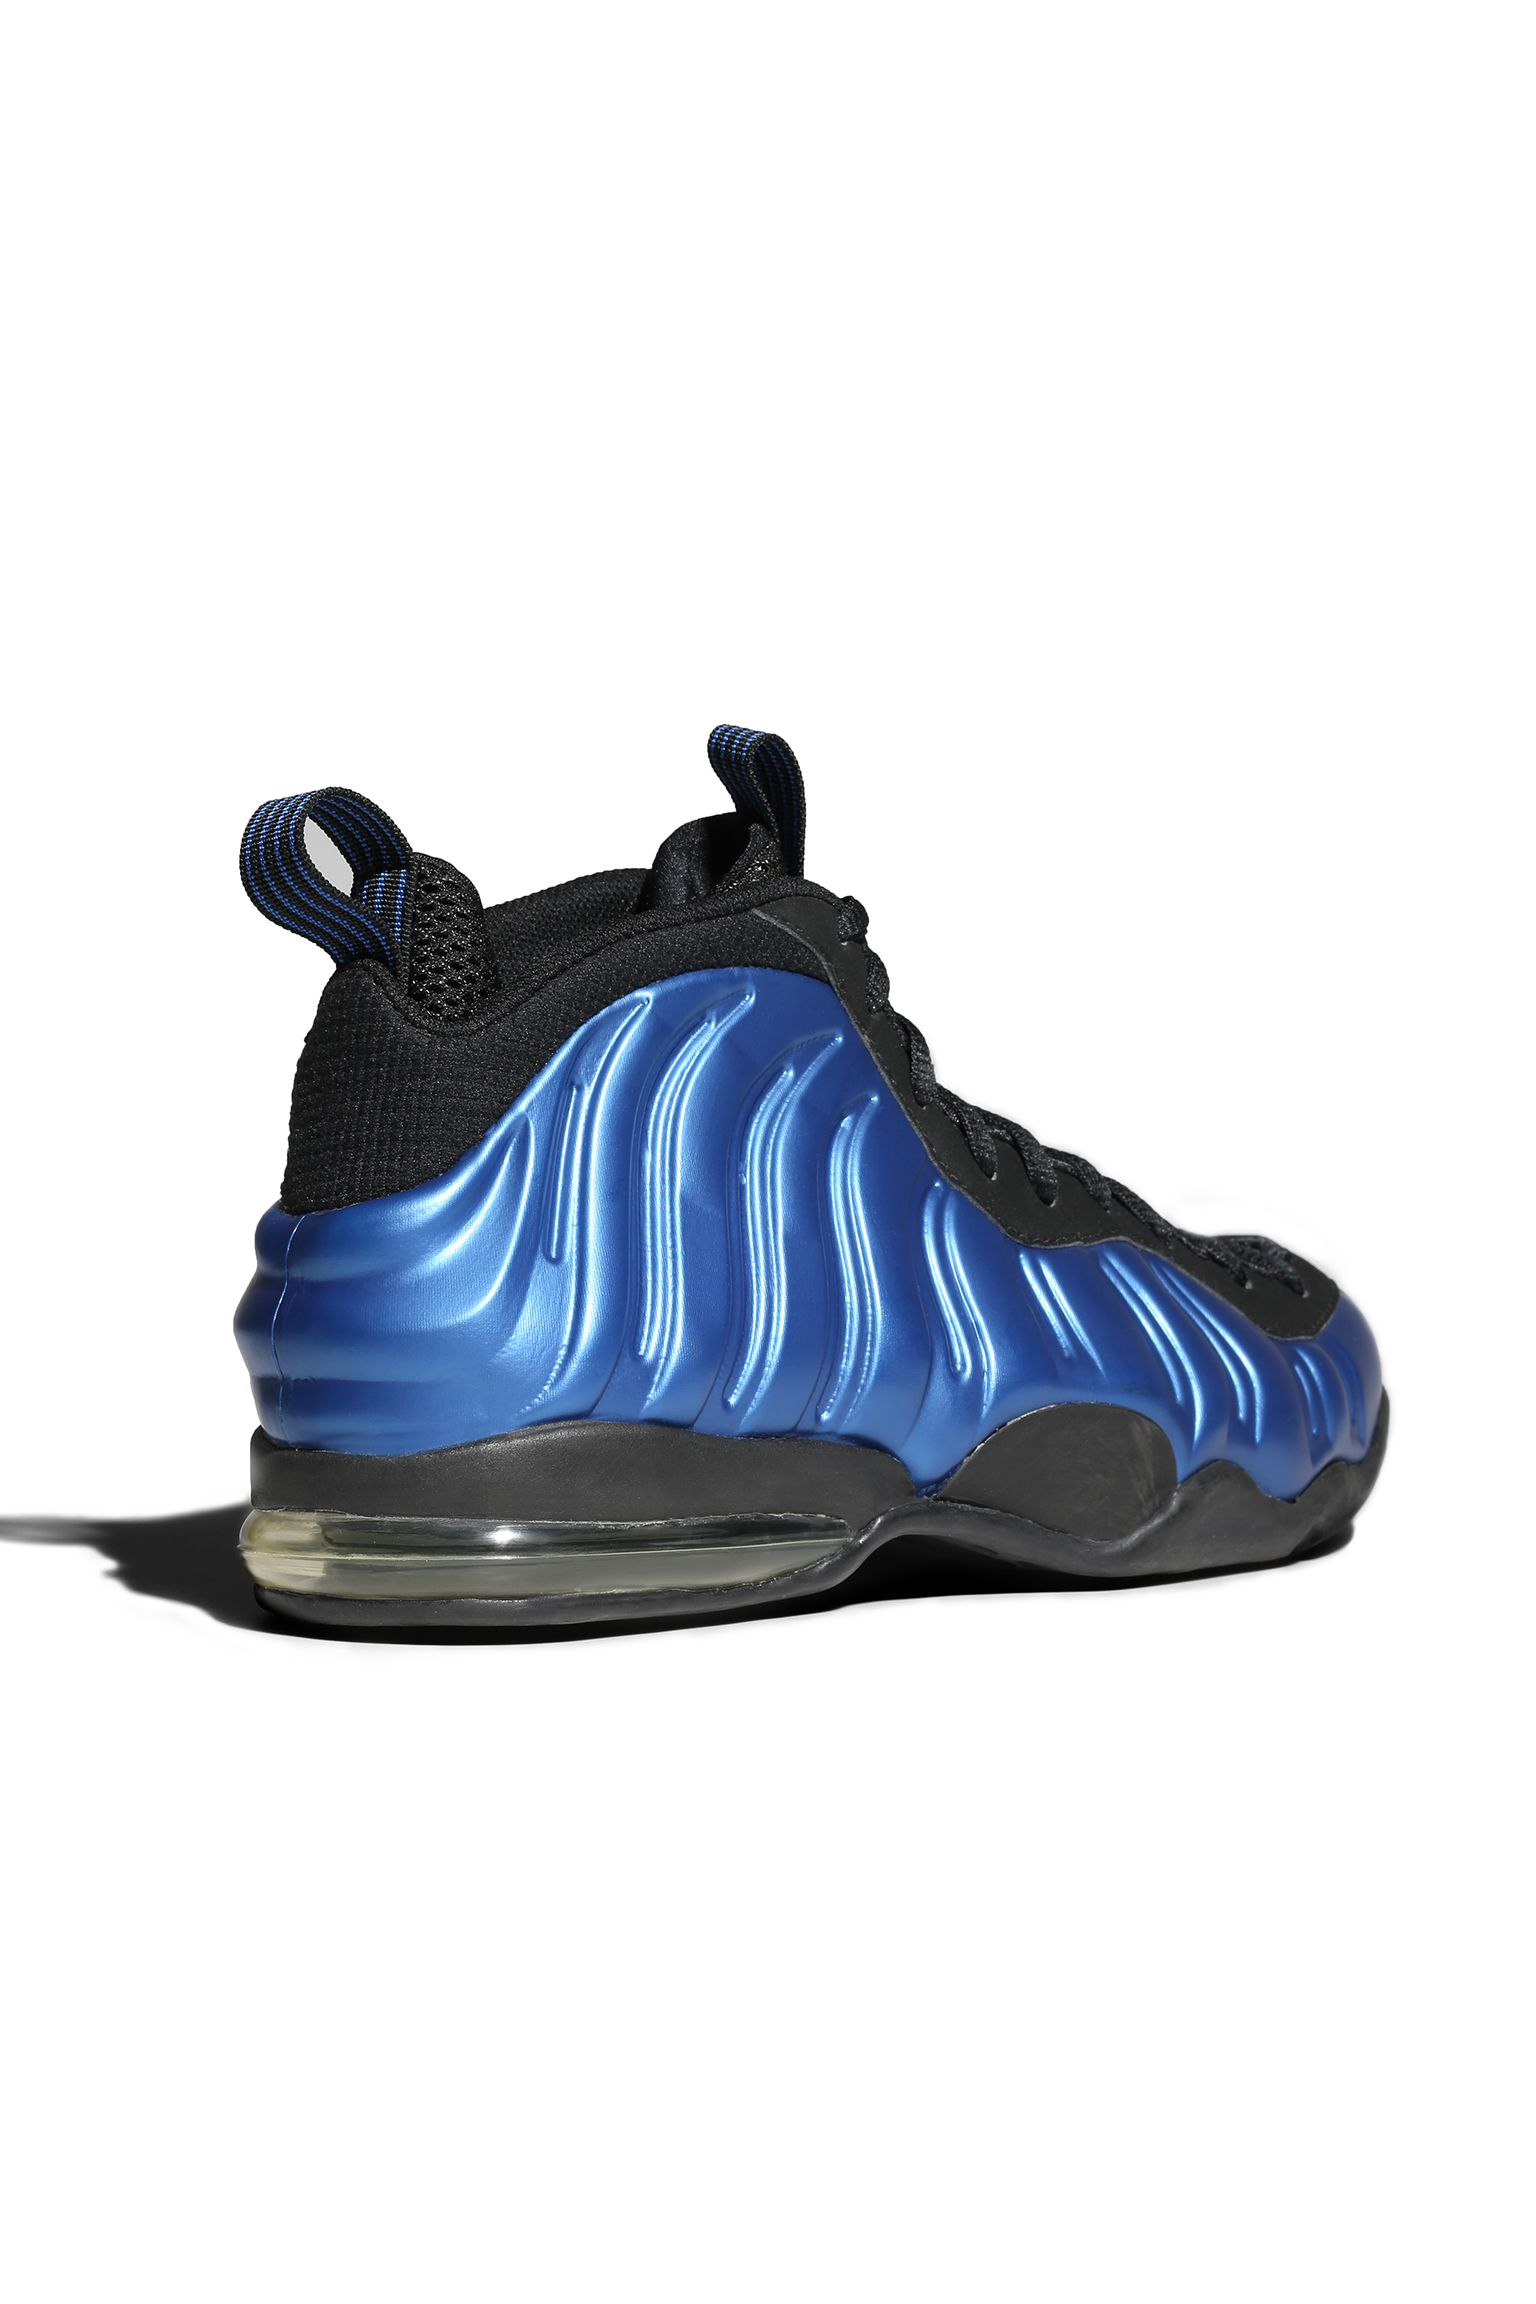 Dentro la scarpa: Nike Air Foamposite One